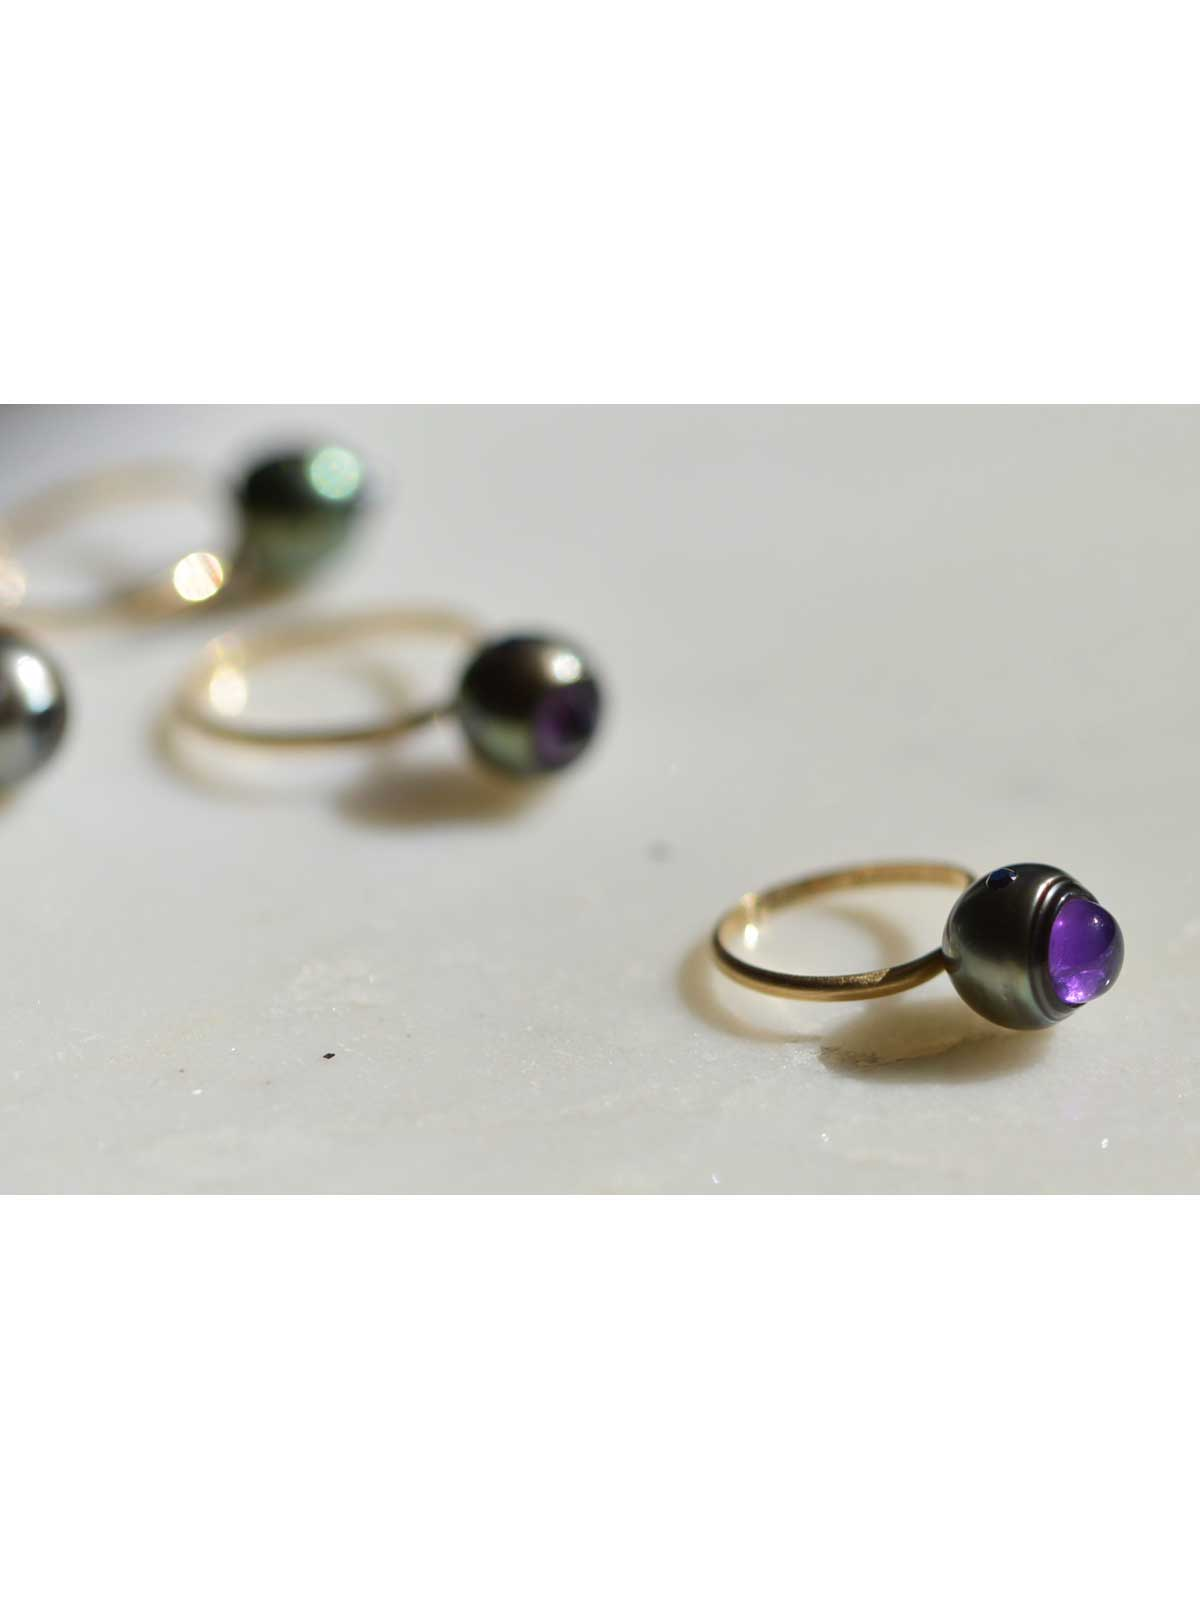 panthere ring Tahitian Pearl Black Diamond Amethyst 14K yellow gold